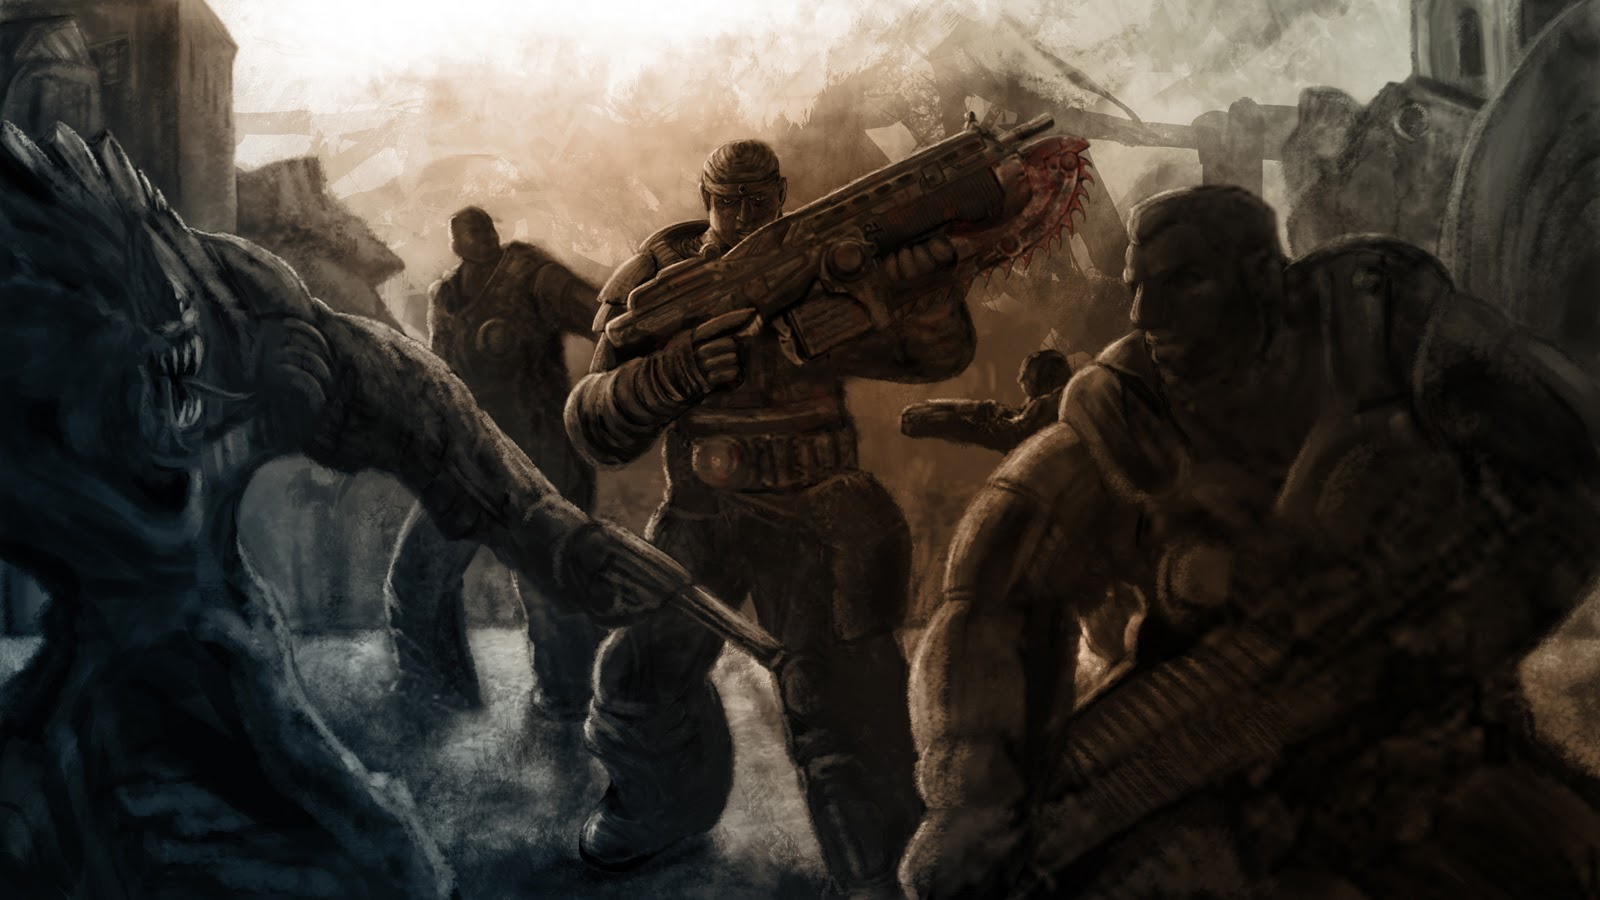 Gears of War HD & Widescreen Wallpaper 0.475985042921781